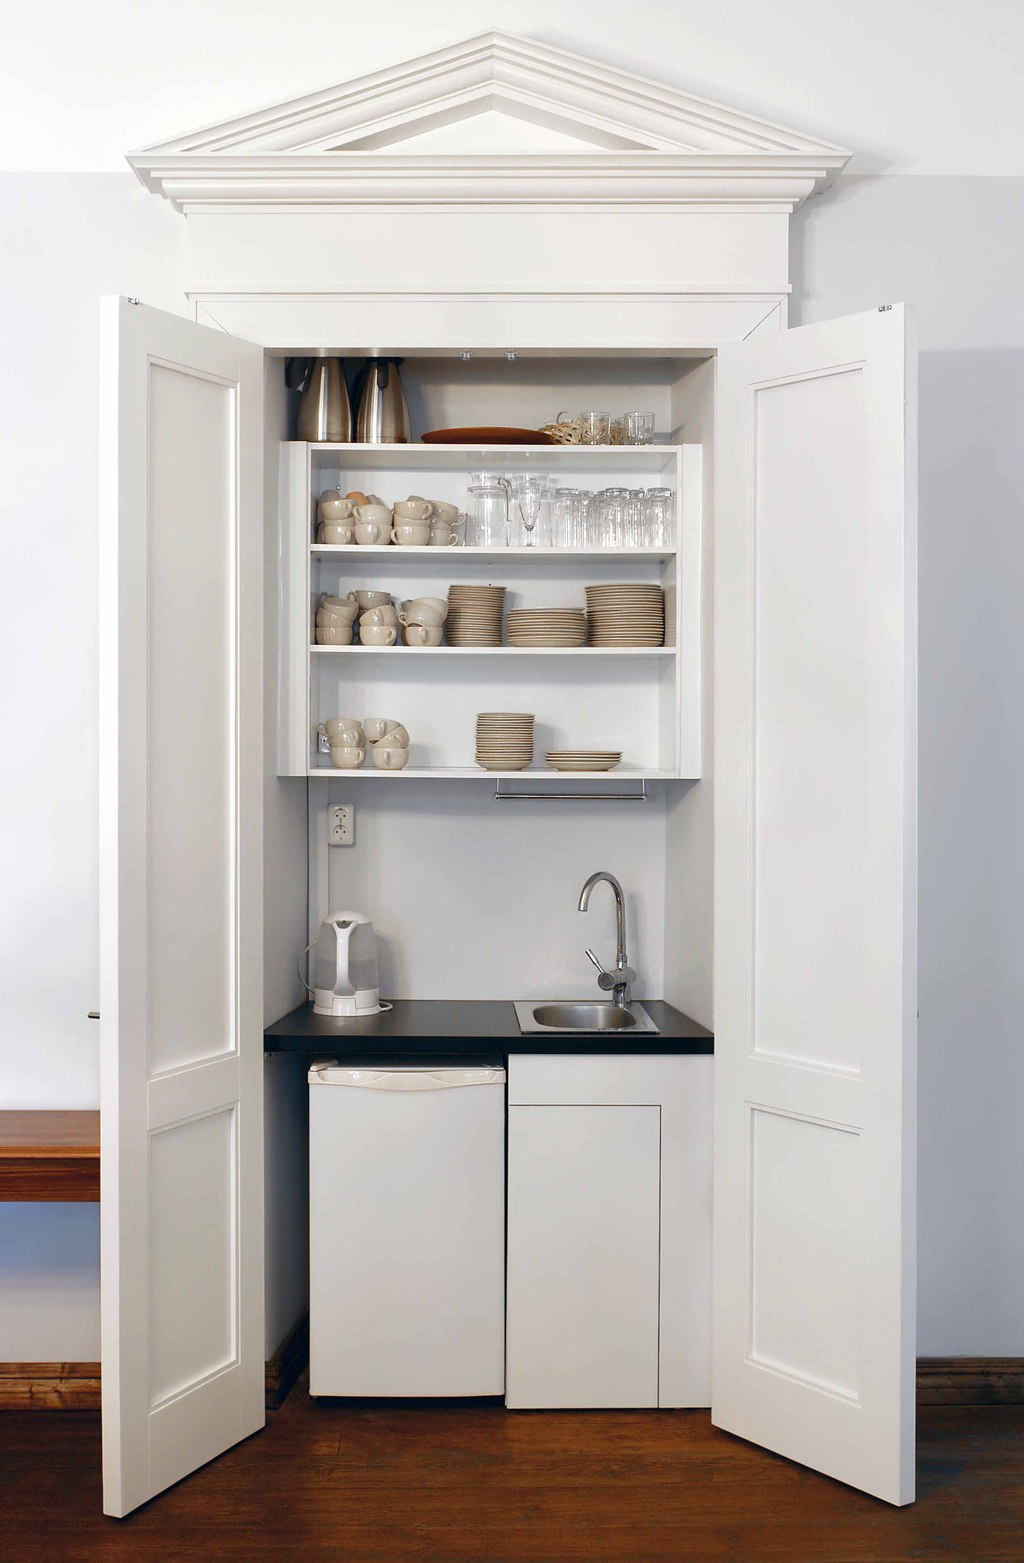 kitchen cabinets cleaning kitchen cabinets Beyond the occasional wipe down with a rag kitchen cabinets and cupboards needs the